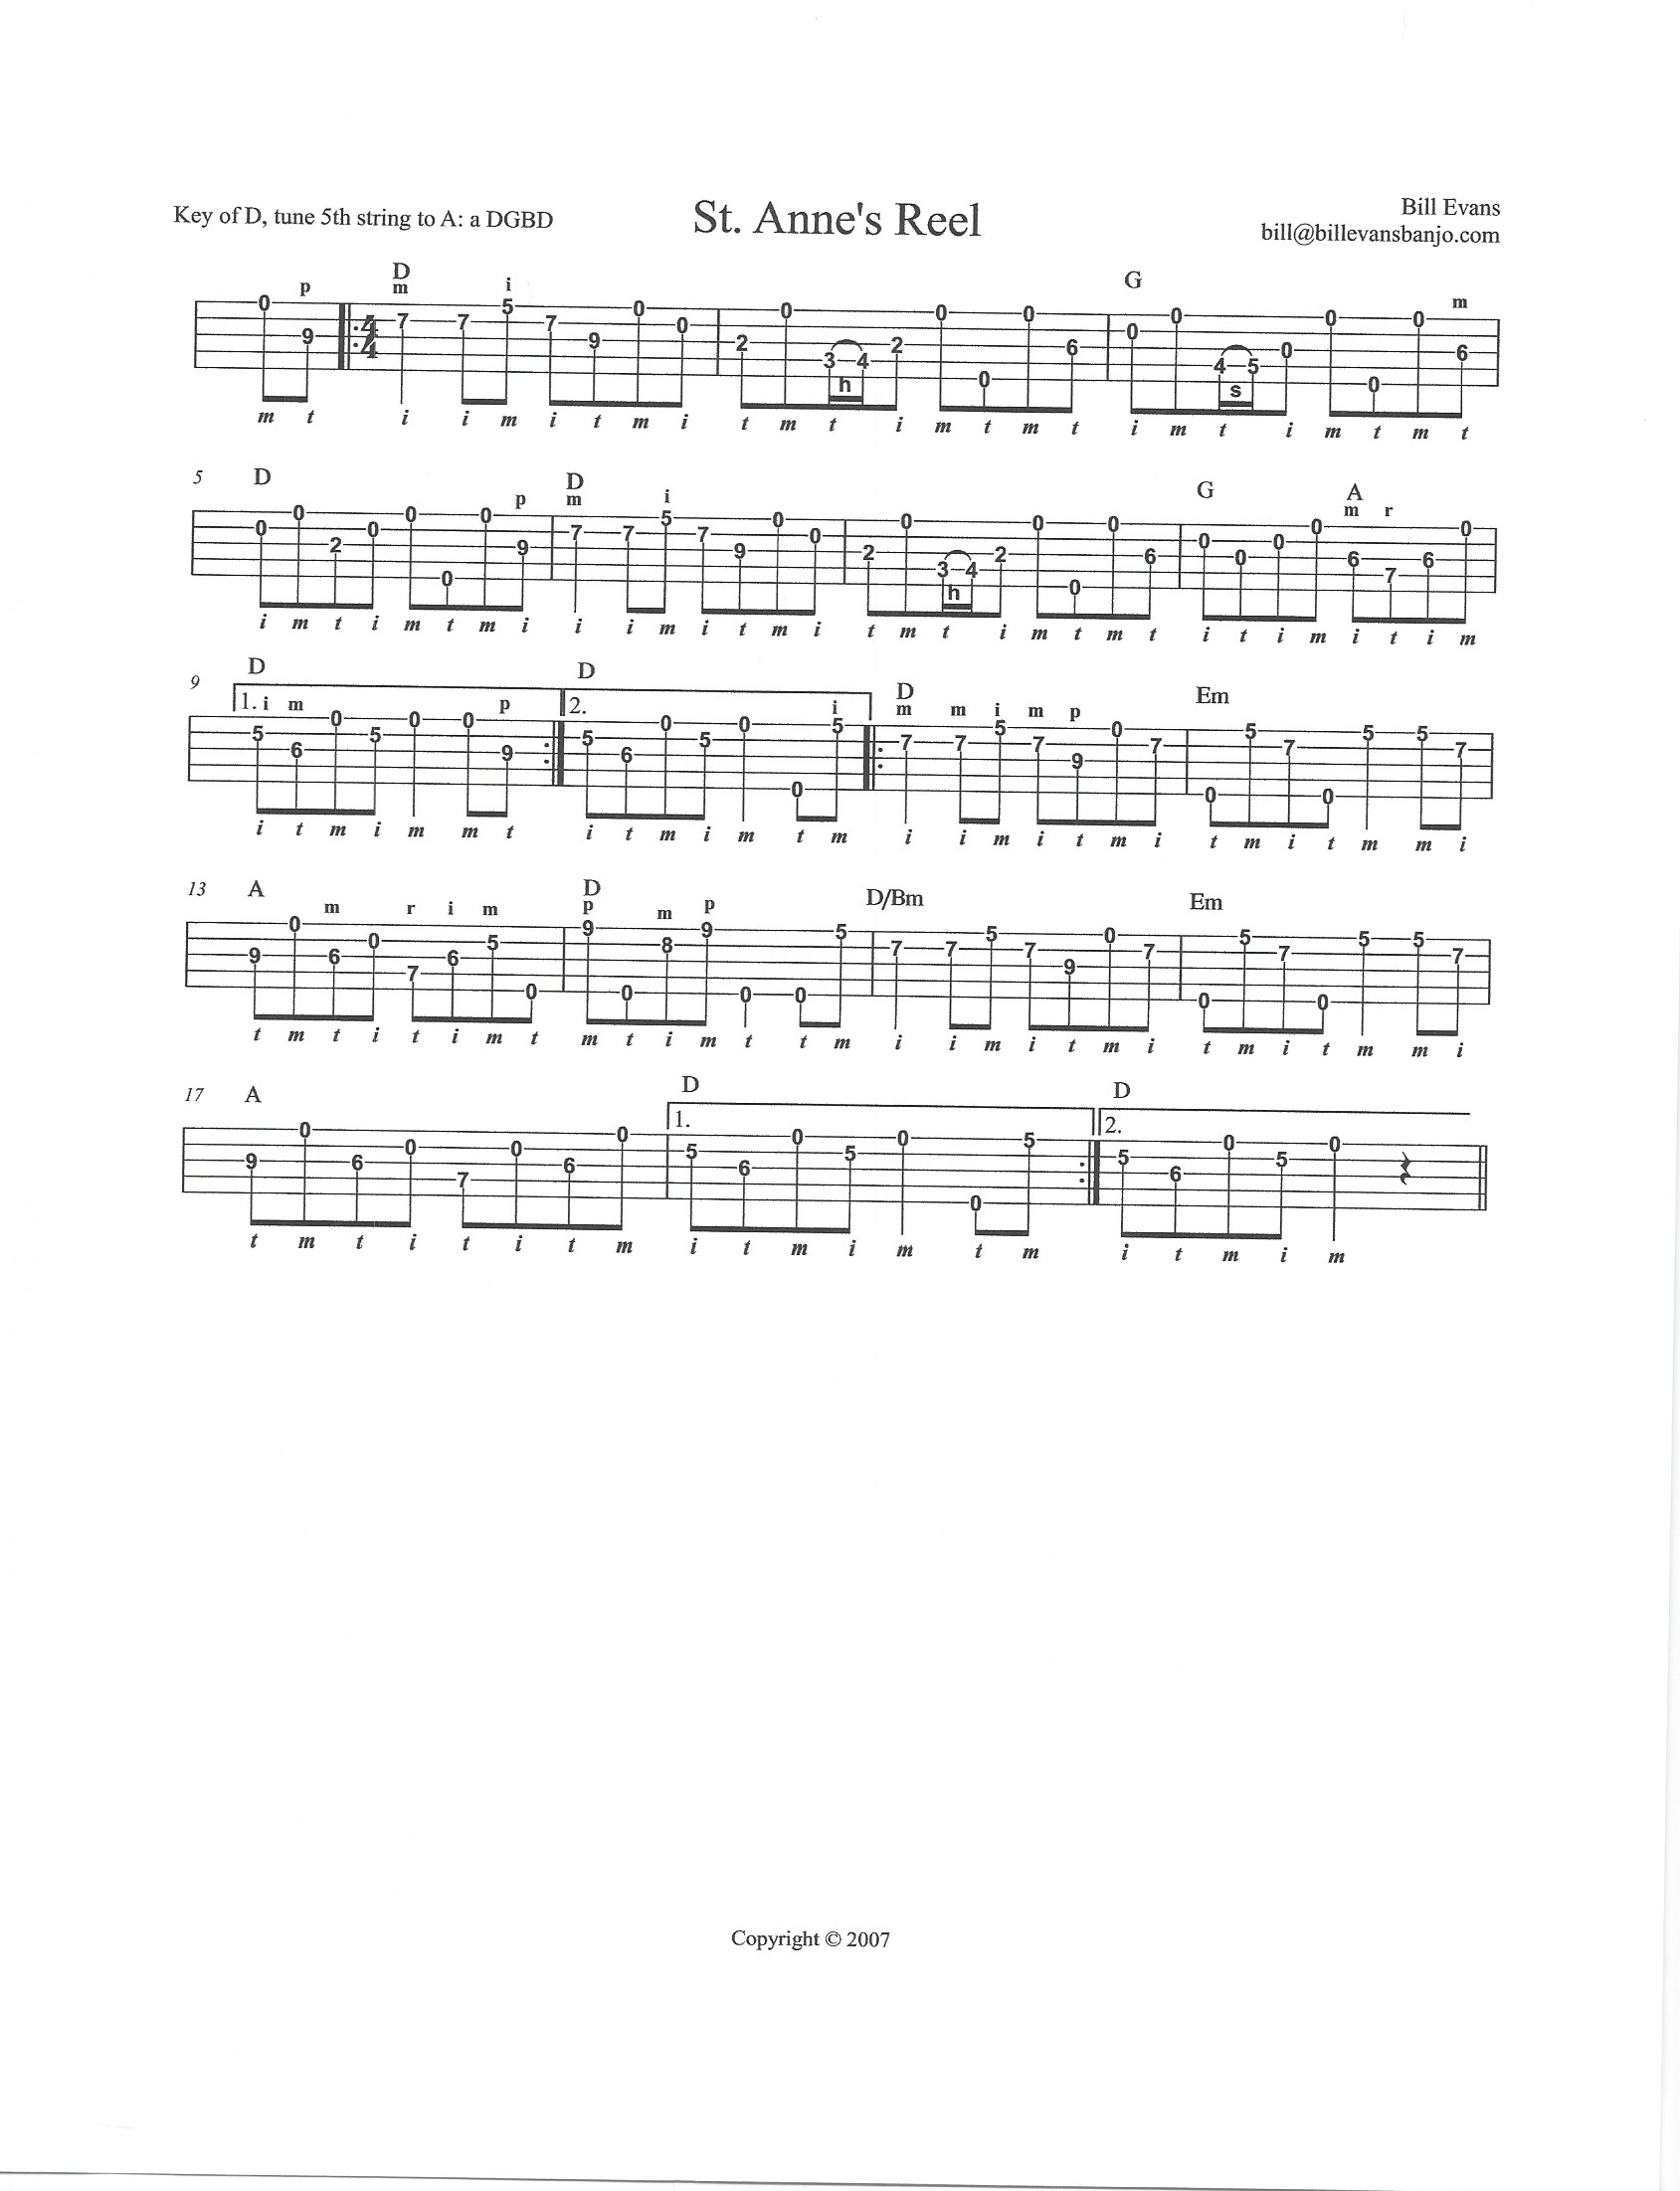 Tab by Bill Evans, key of D, banjo tuning aDGBD